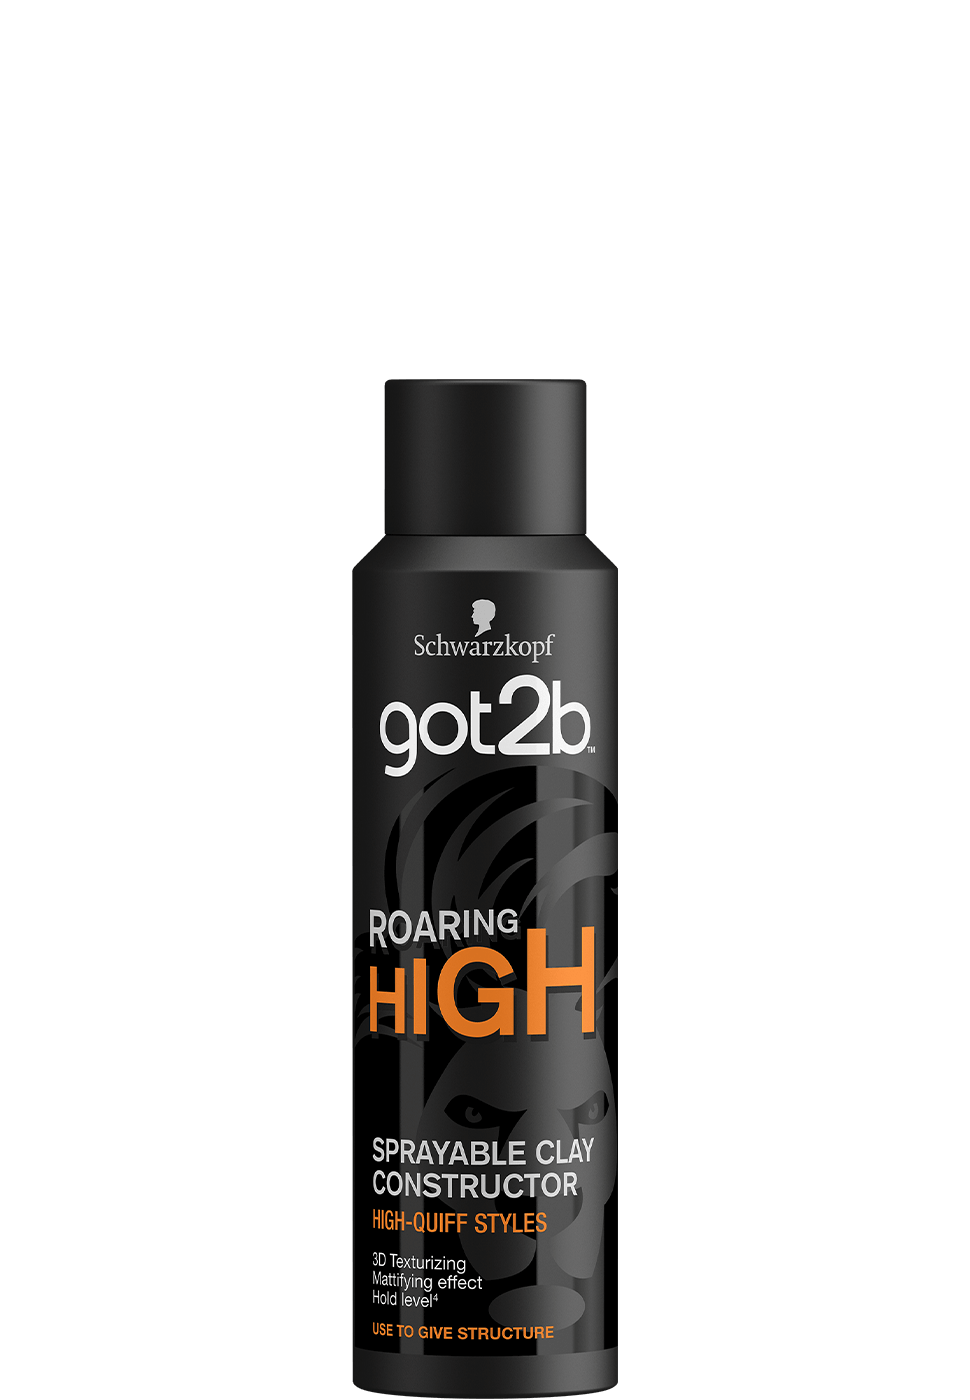 got2b_com_roaring_high_sprayable_clay_constructor_970x1400